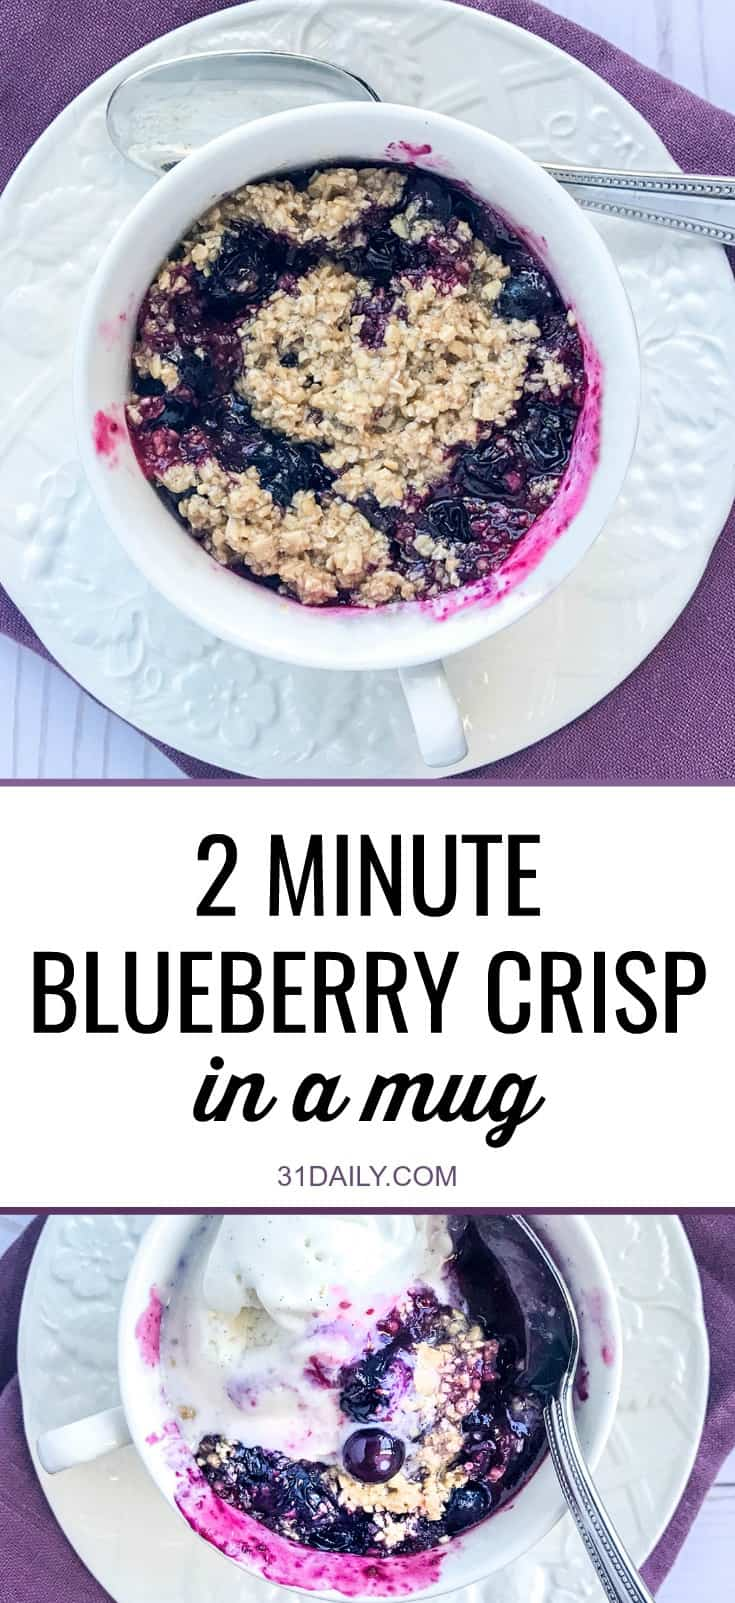 2 Minute Blueberry Crisp in a Mug | 31Daily.com